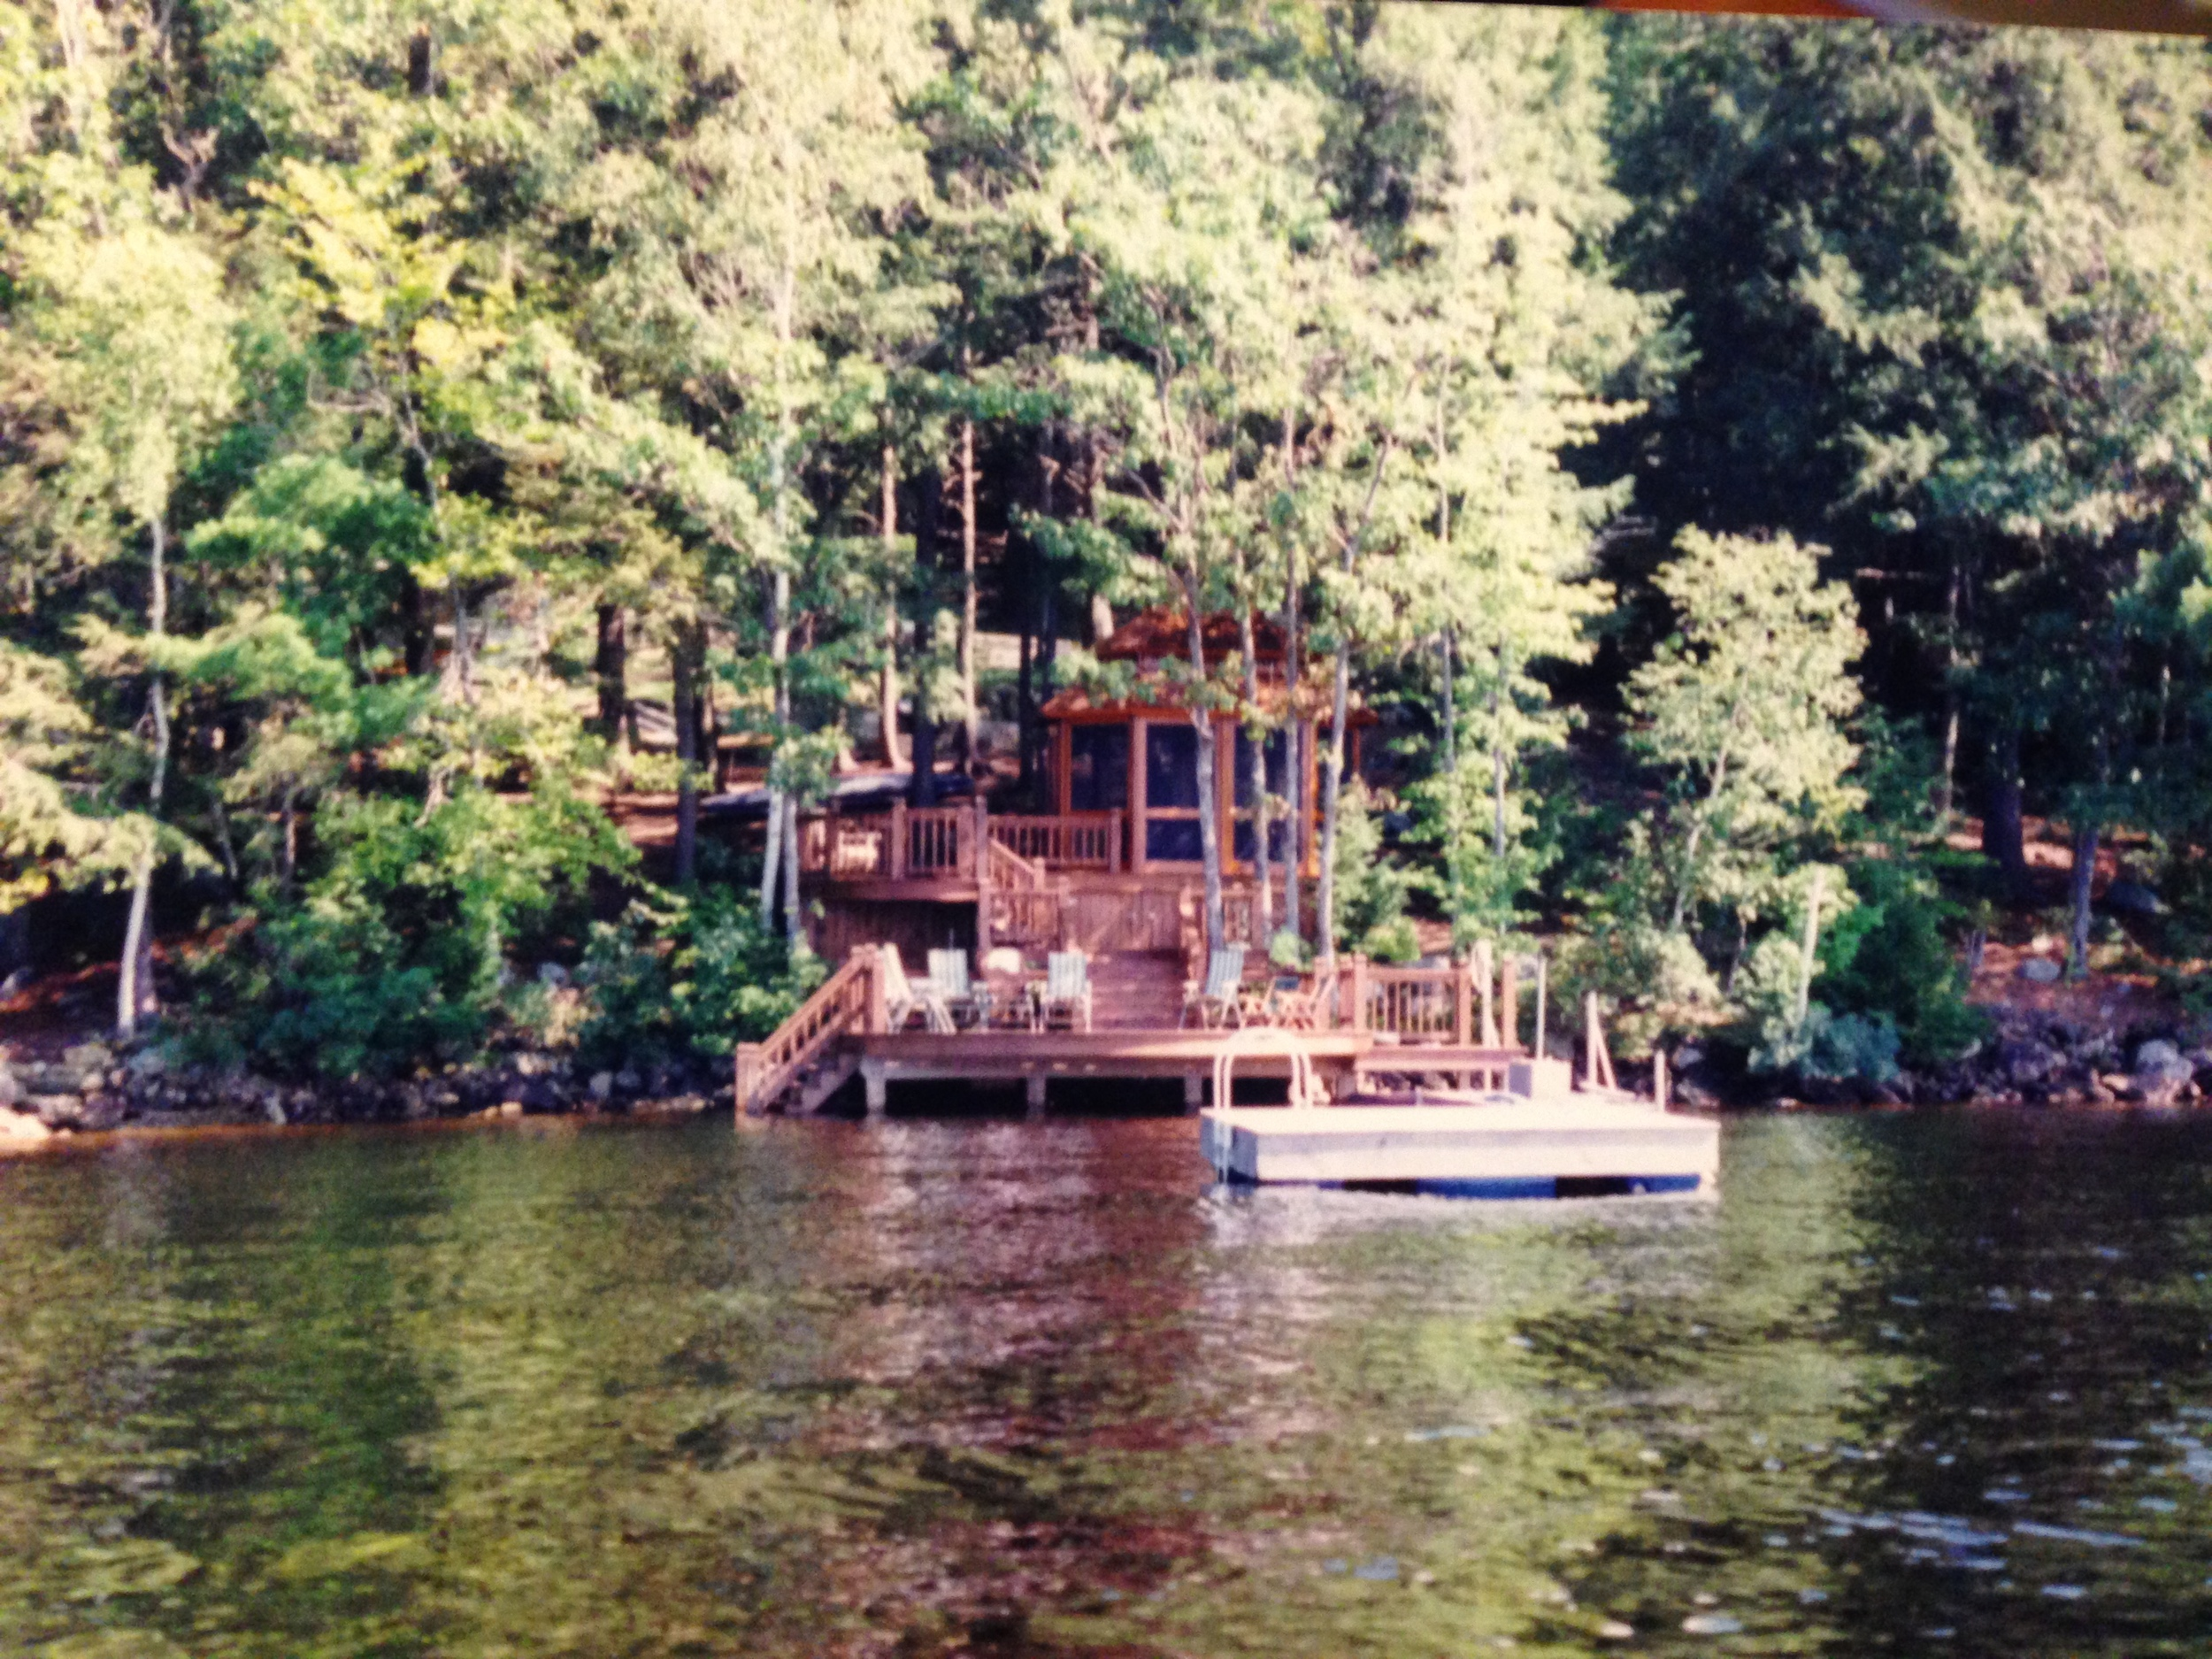 The Dock circa 2002-ish